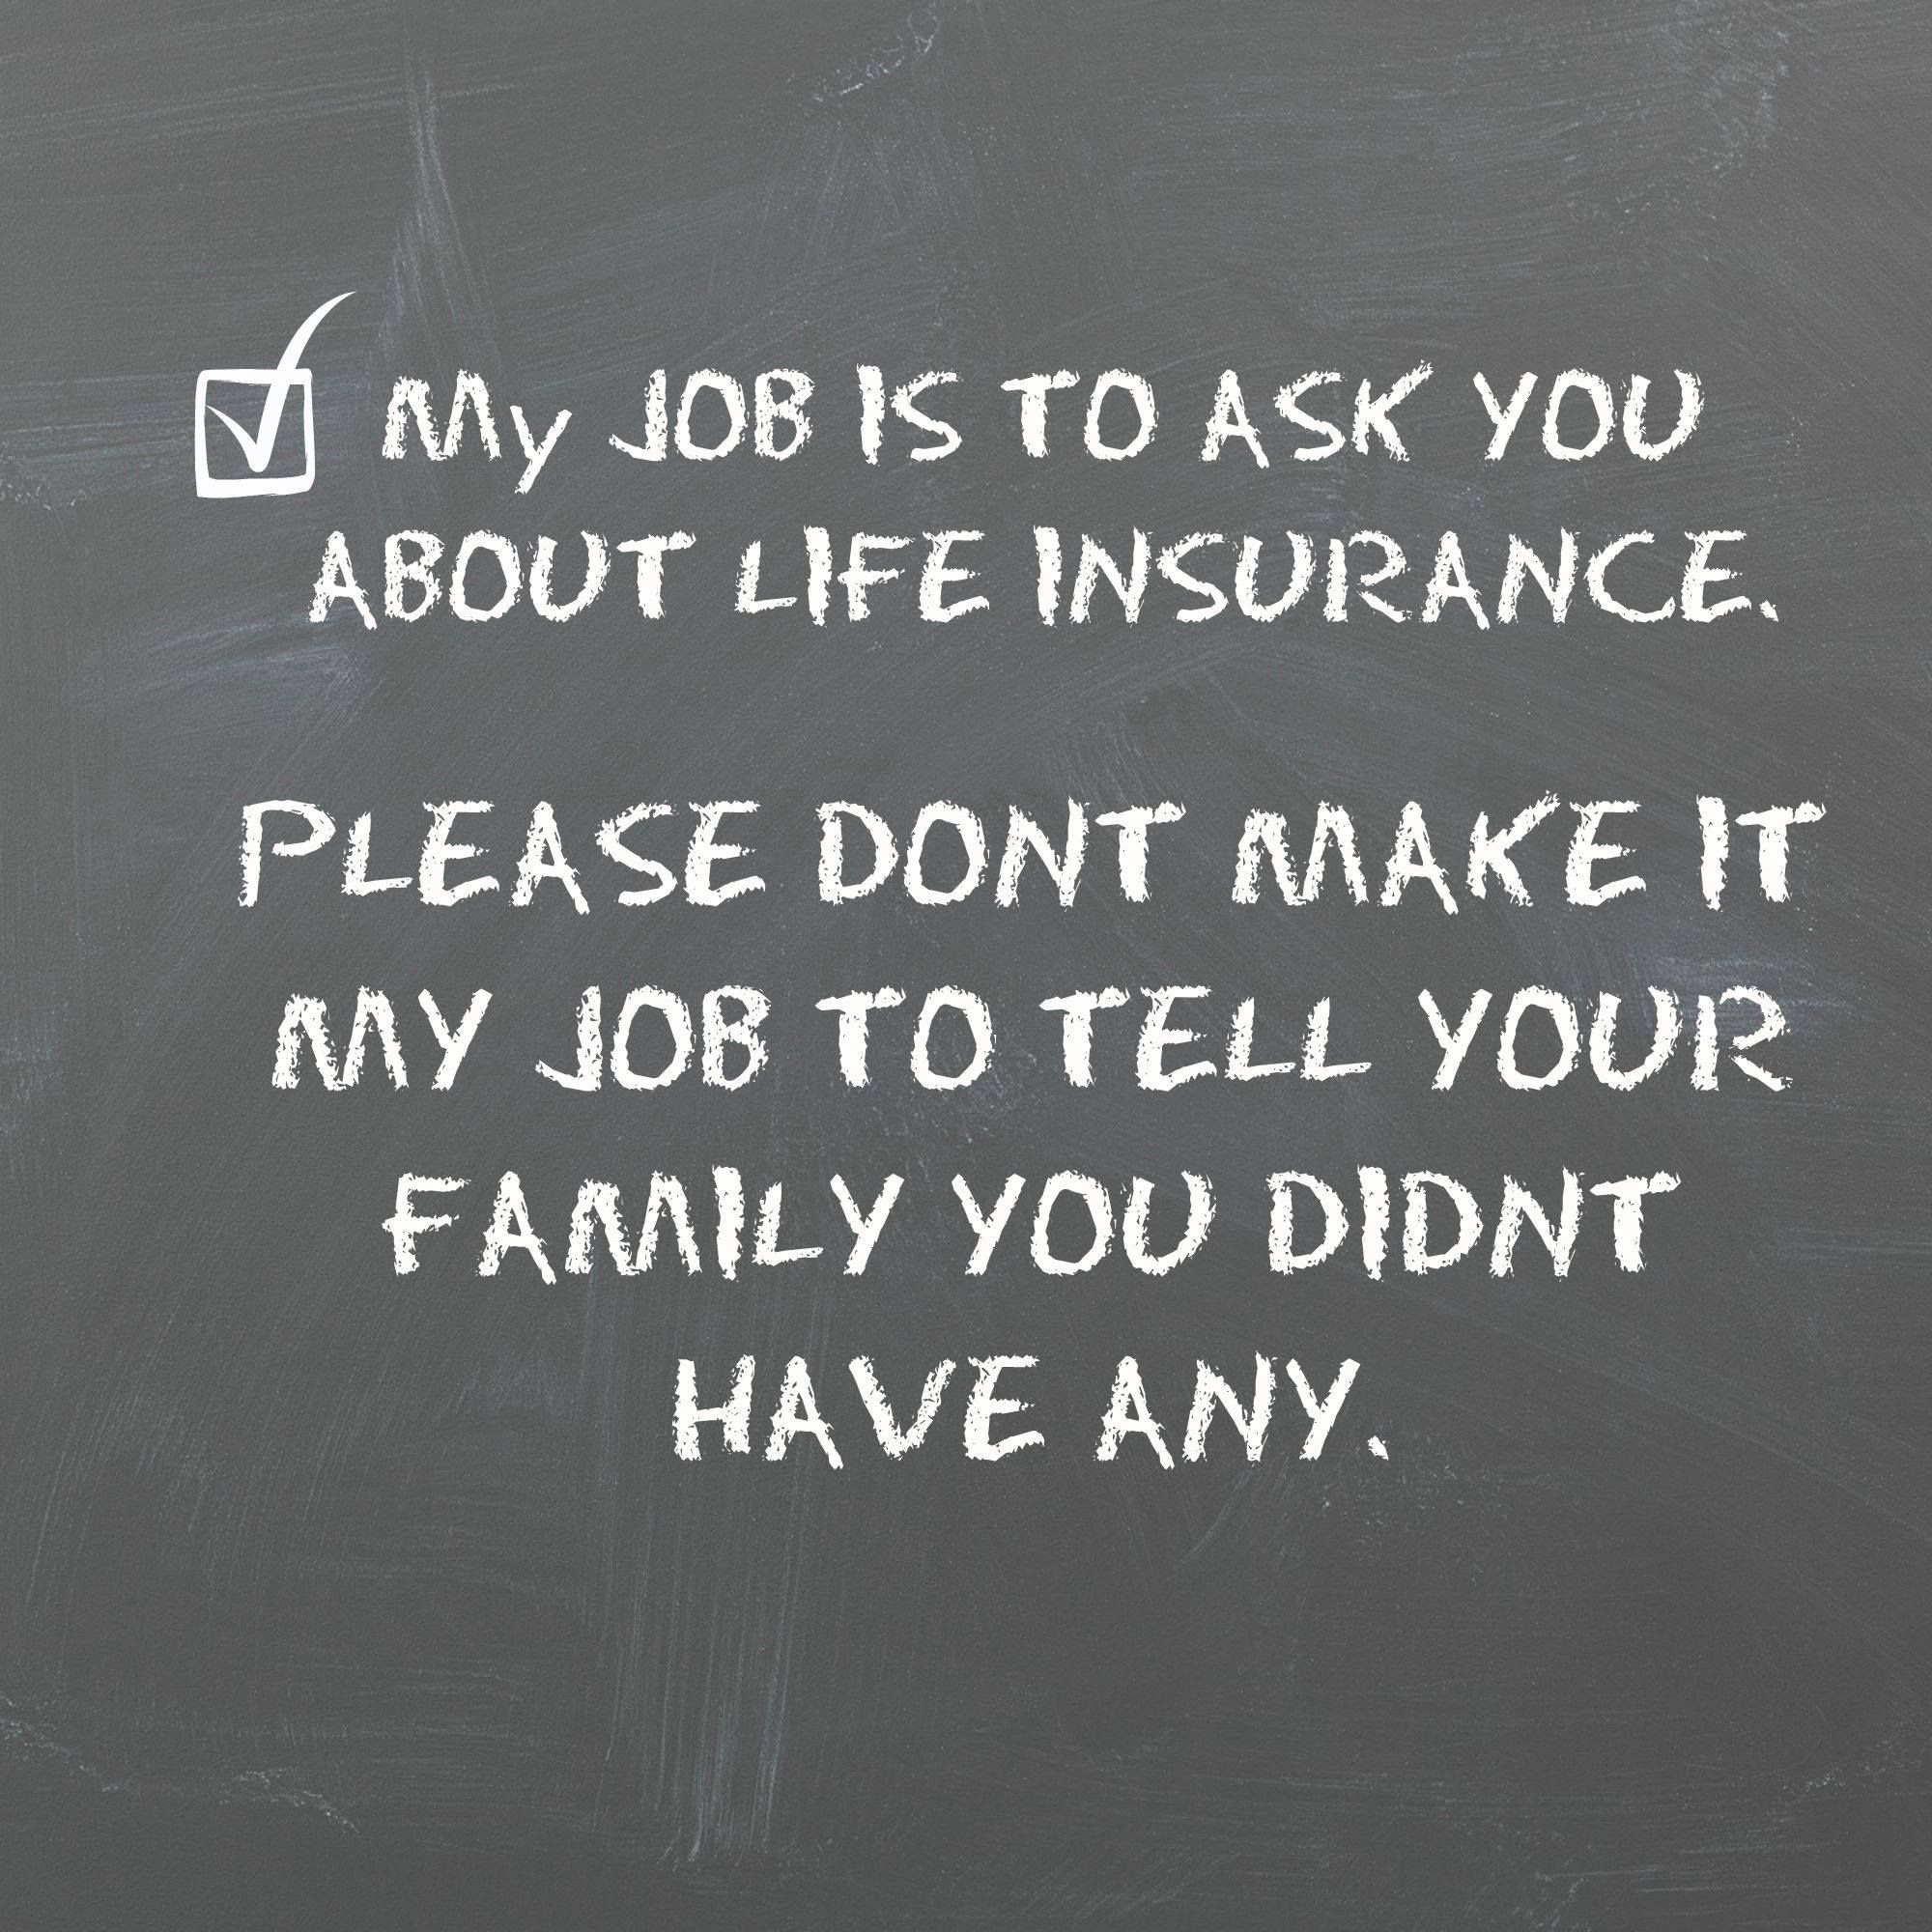 Call Us For Any Lifeinsurance Questions That You Have At 330 225 1166 Firemark Life Insurance Awareness Month Life Insurance Marketing Life Insurance Agent